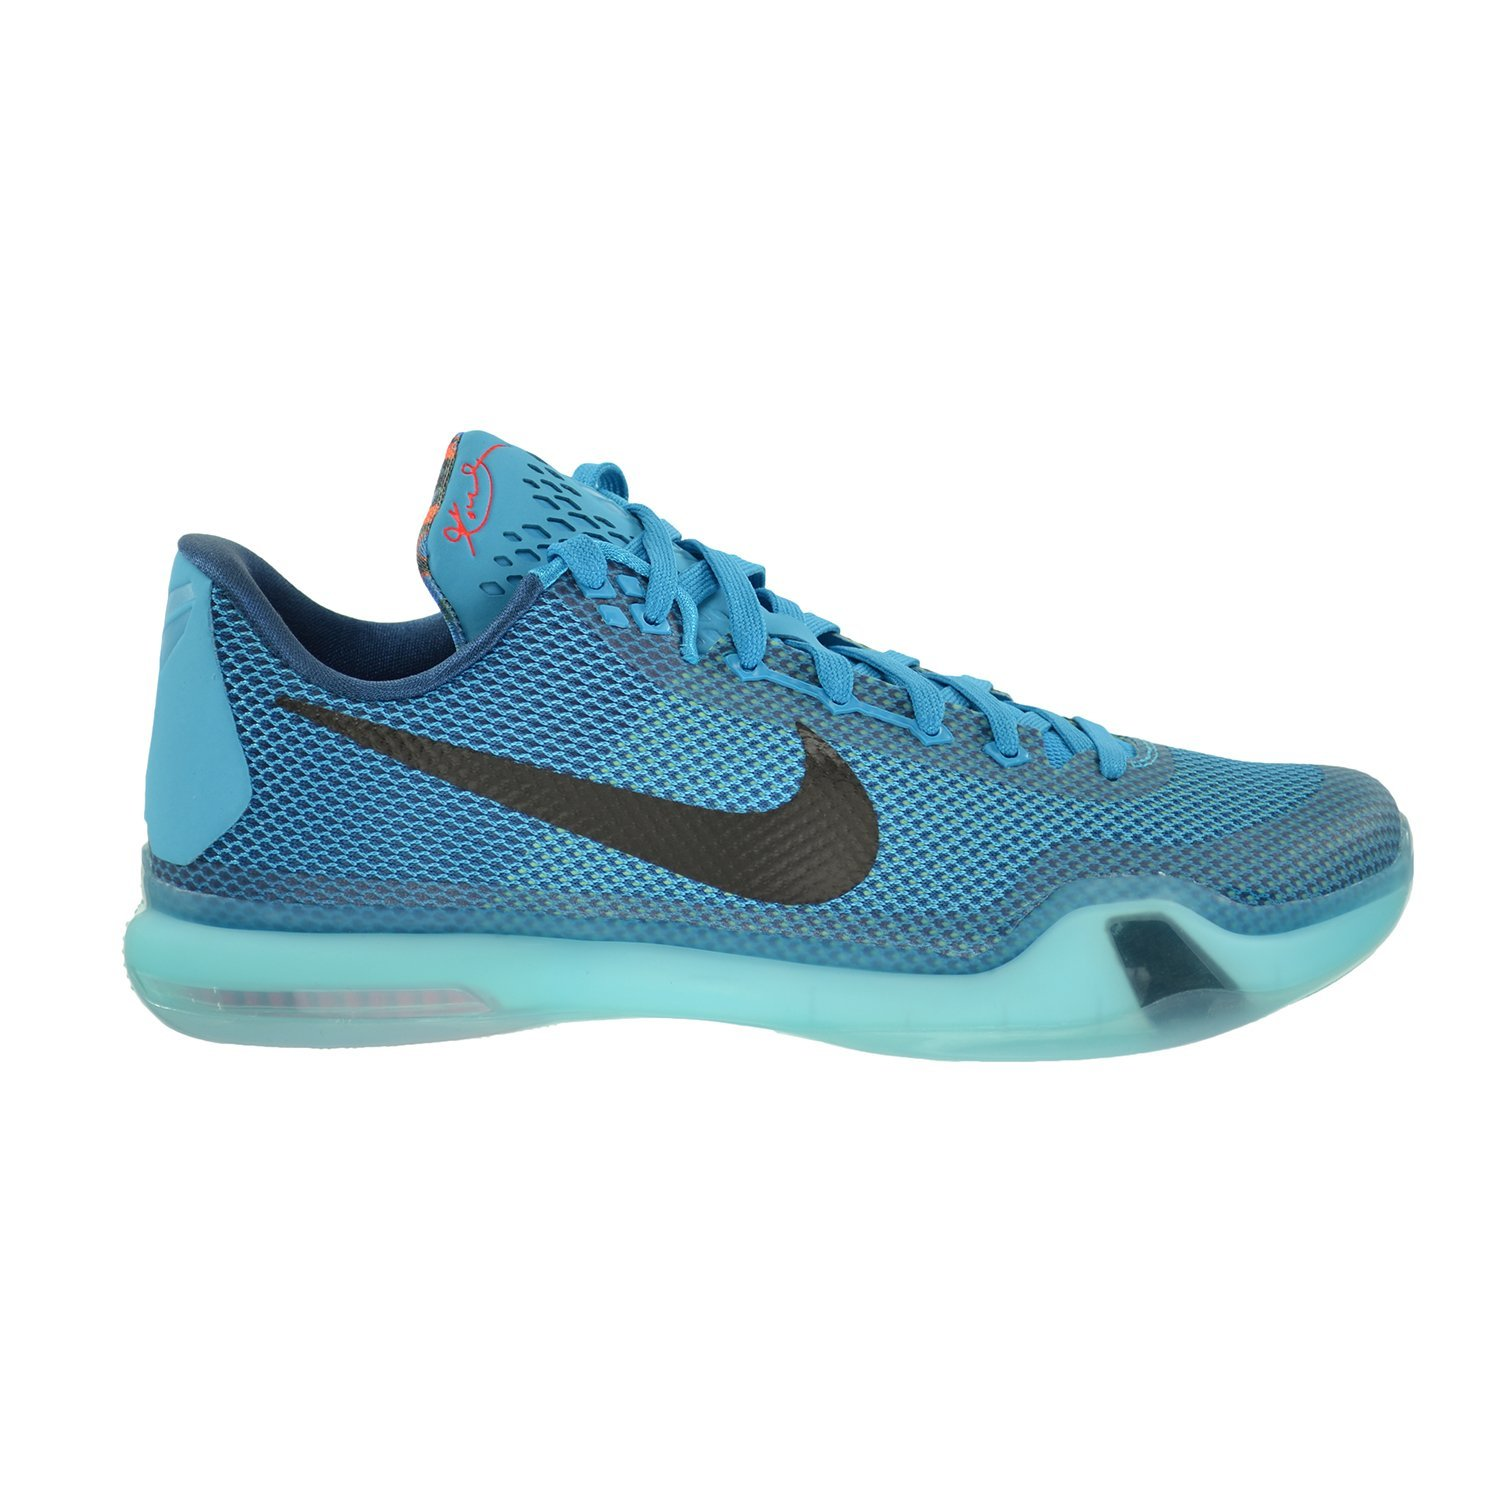 new style 5eb9b 8c6c7 Get Quotations · Nike Kobe X